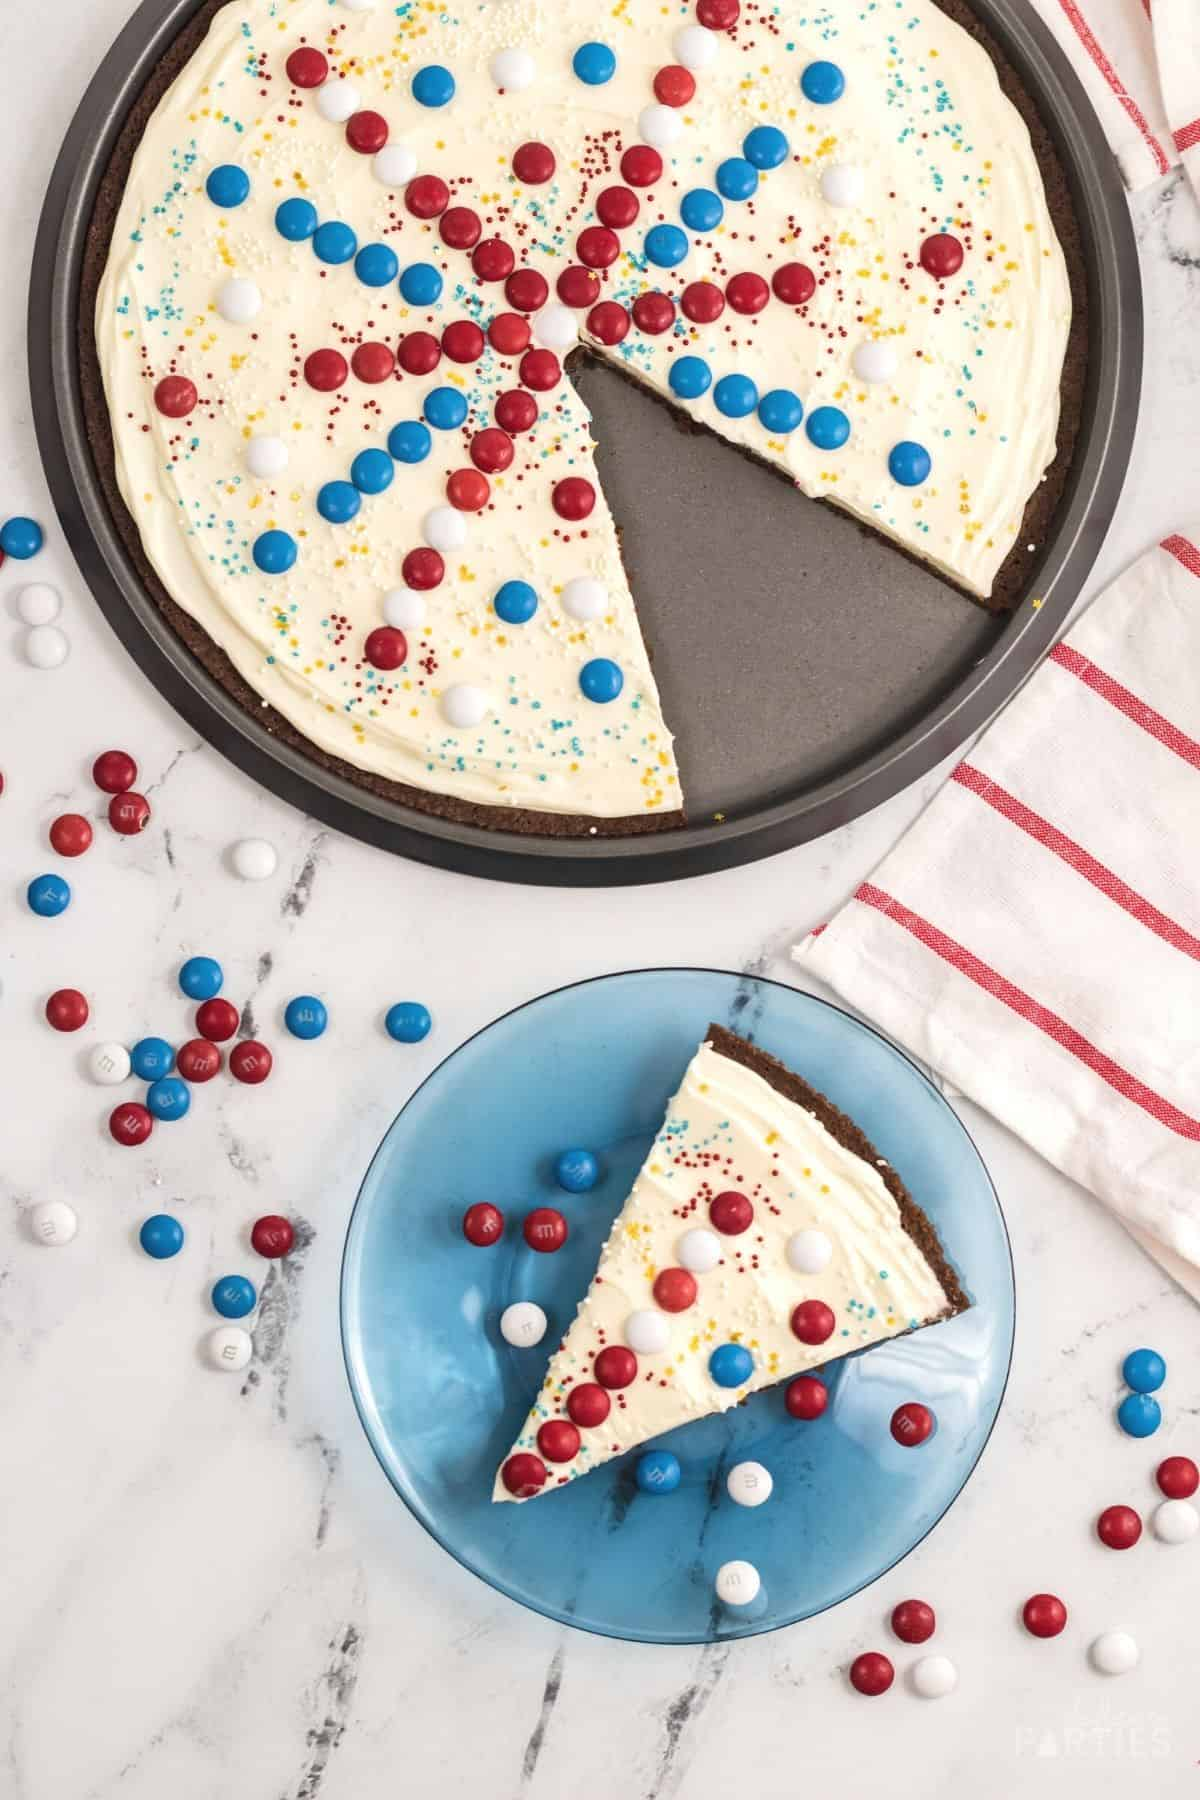 Overhead view of a July 4th dessert pizza with a slice cut out and on a blue plate.